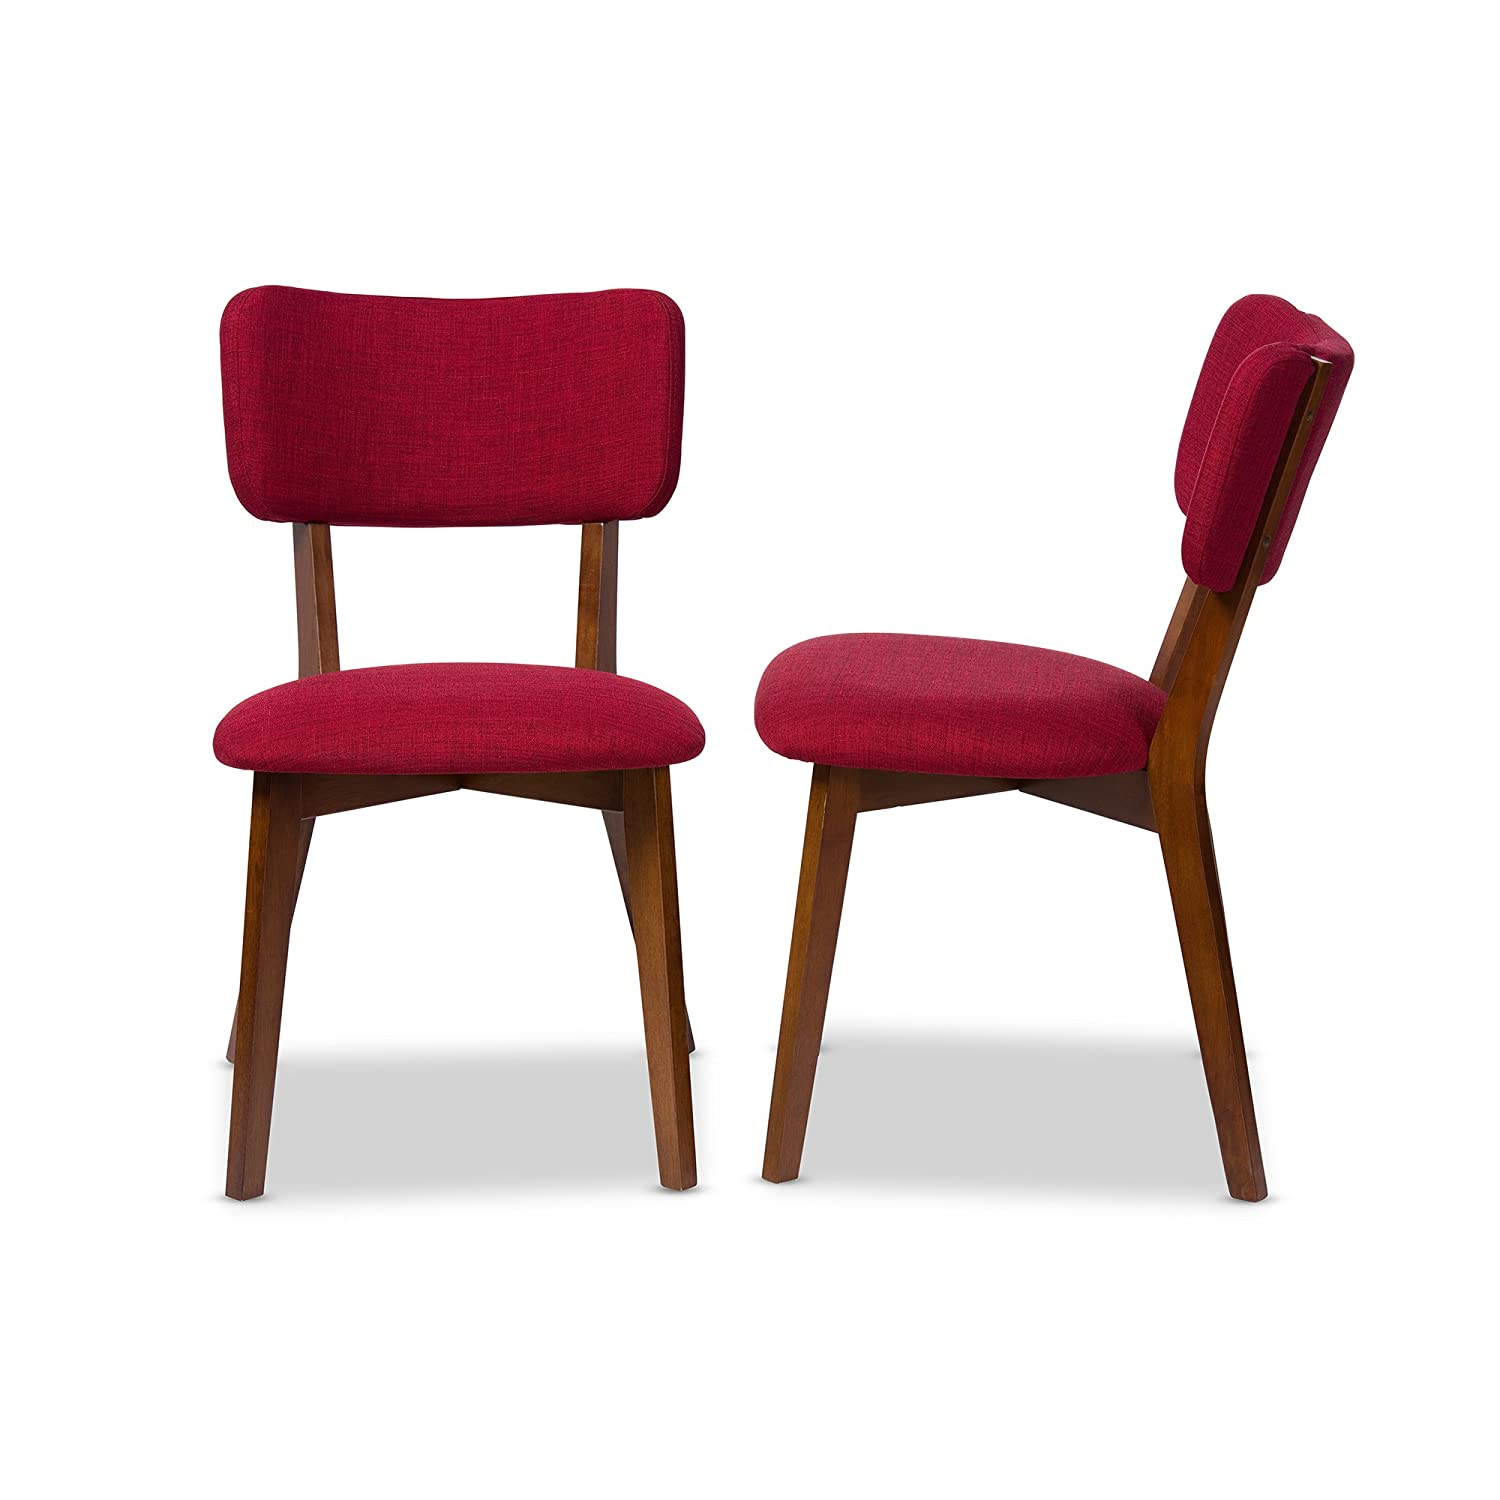 red upholstered dining chairs. Amazon.com - Baxton Studio Set Of 2 Monaco Mid-Century Modern Scandinavian Style Dark Walnut Finish And Red Fabric Upholstered Dining Side Chairs E